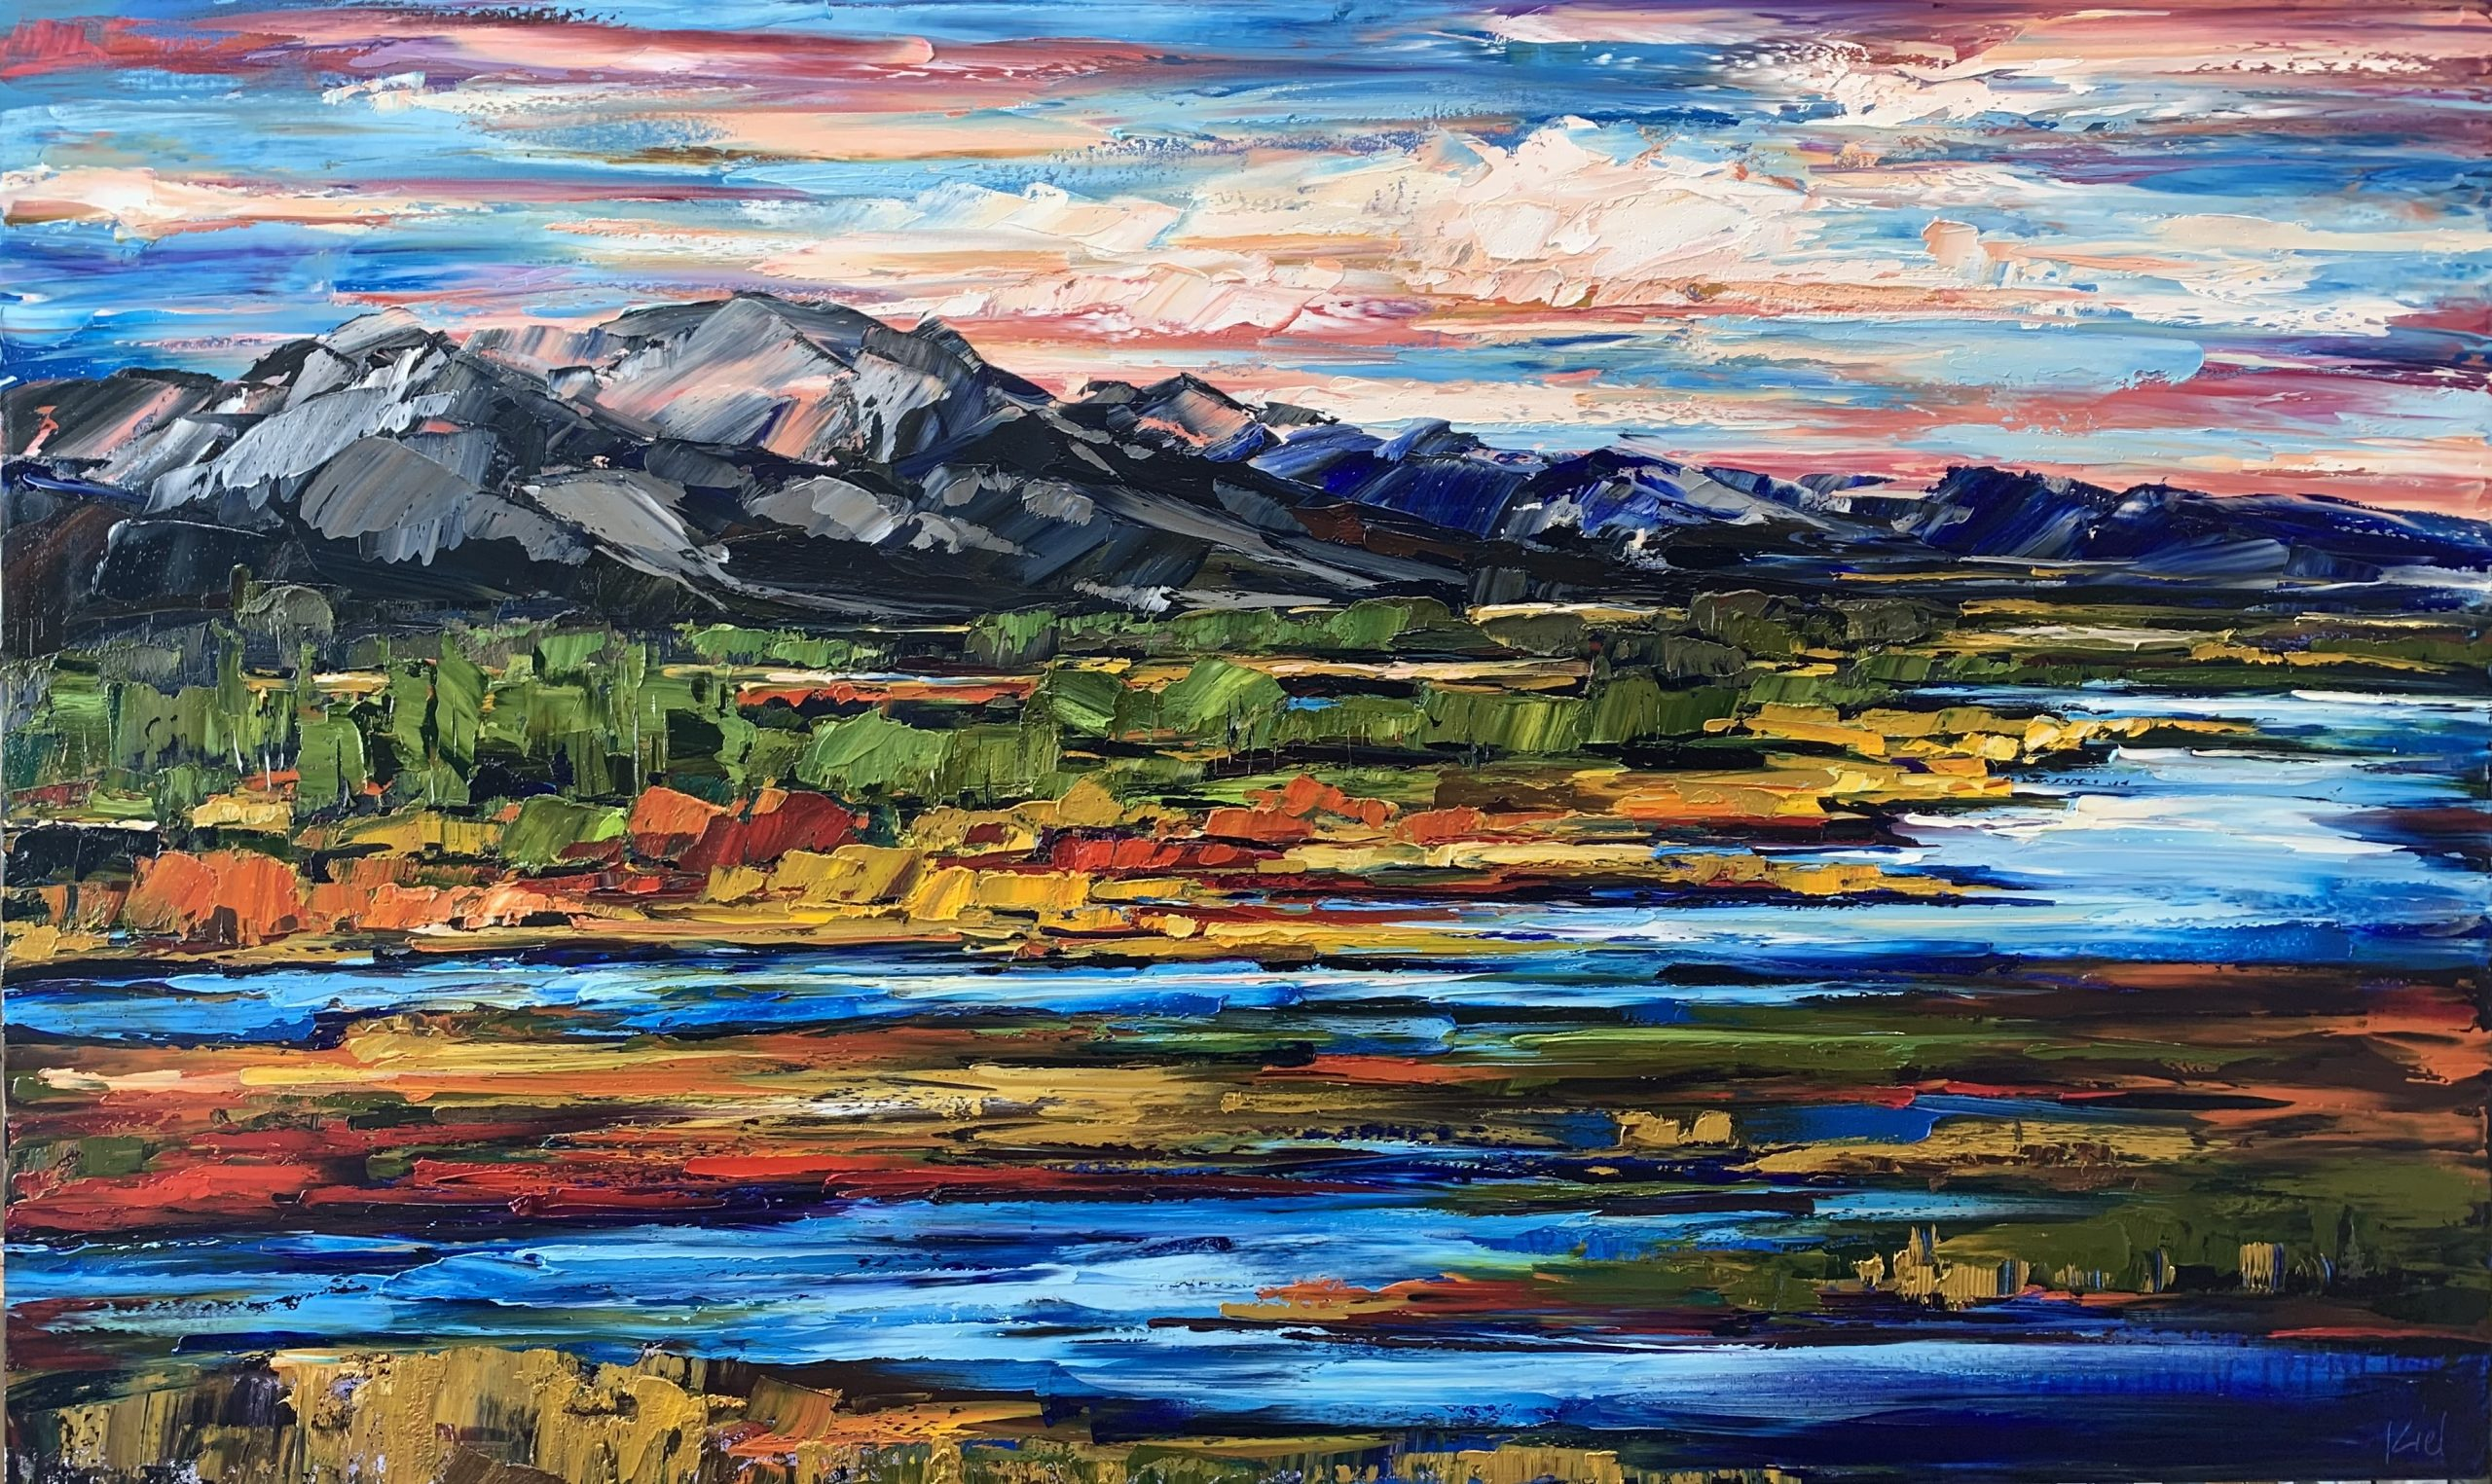 As Long as the Grass Grows and the River Flows, oil landscape painting by Kimberly Kiel | Effusion Art Gallery + Cast Glass Studio, Invermere BC